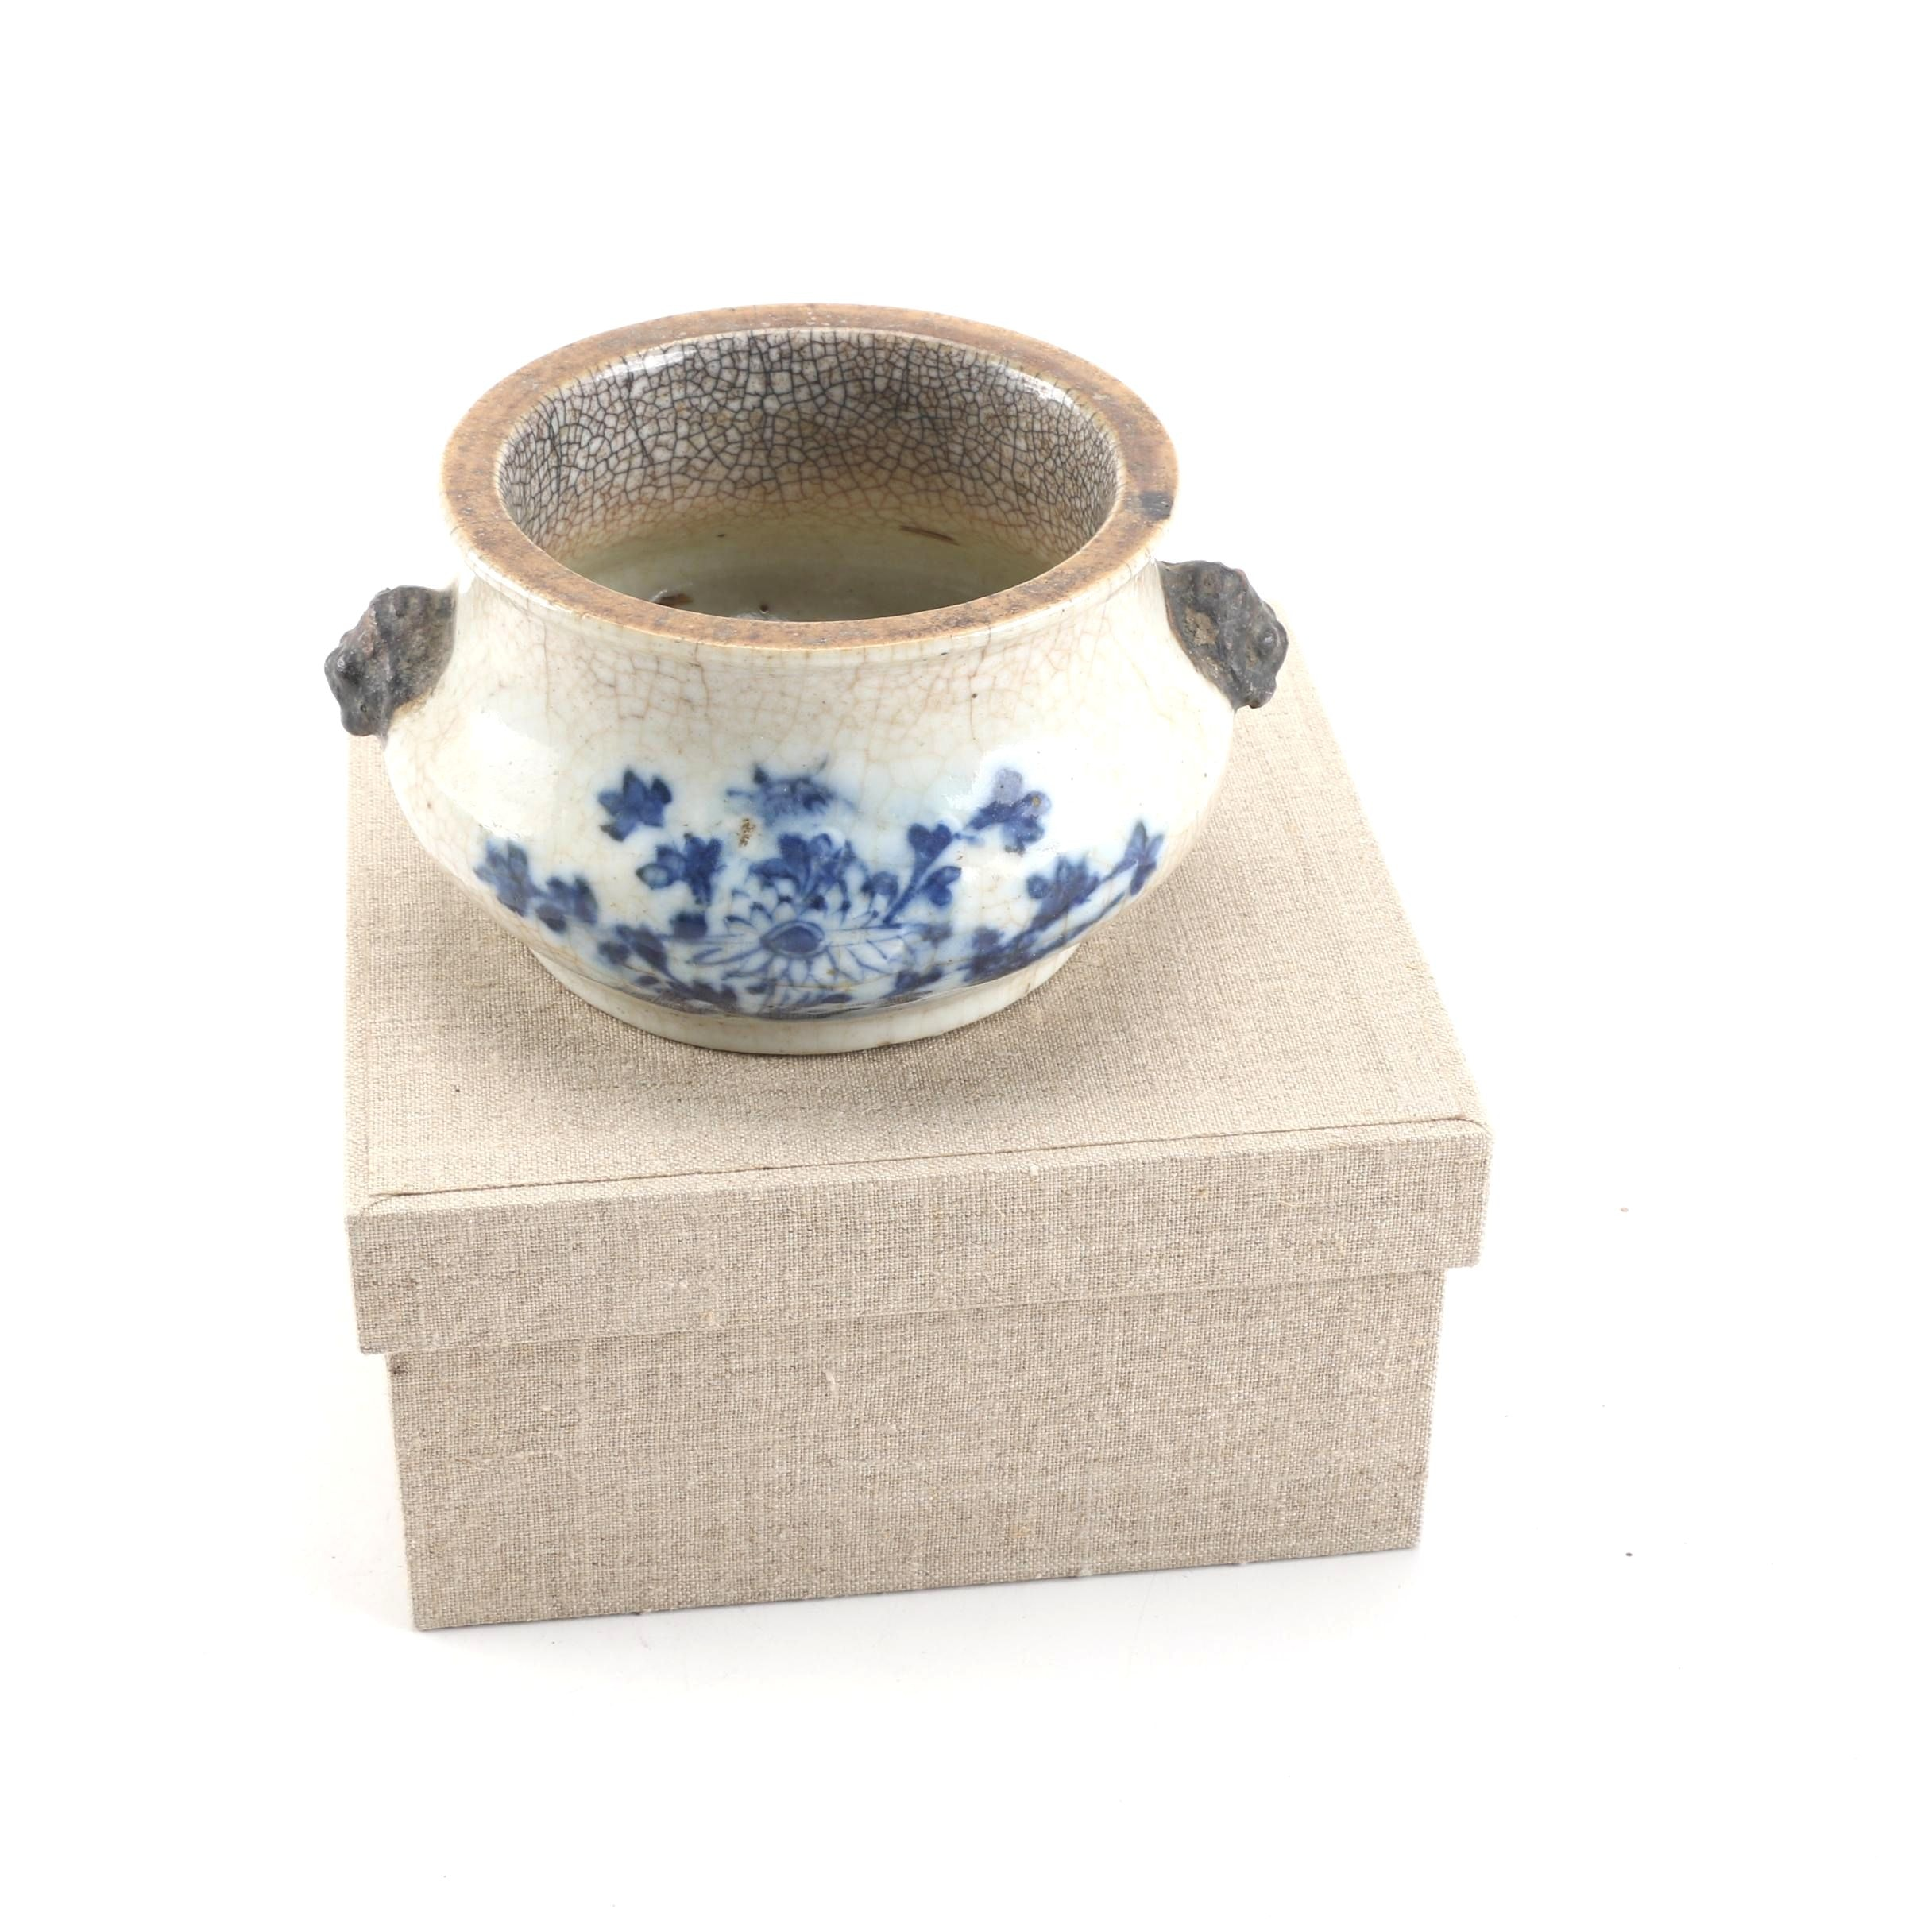 Chinese Tao-Kuang Style Earthenware Bulb Bowl